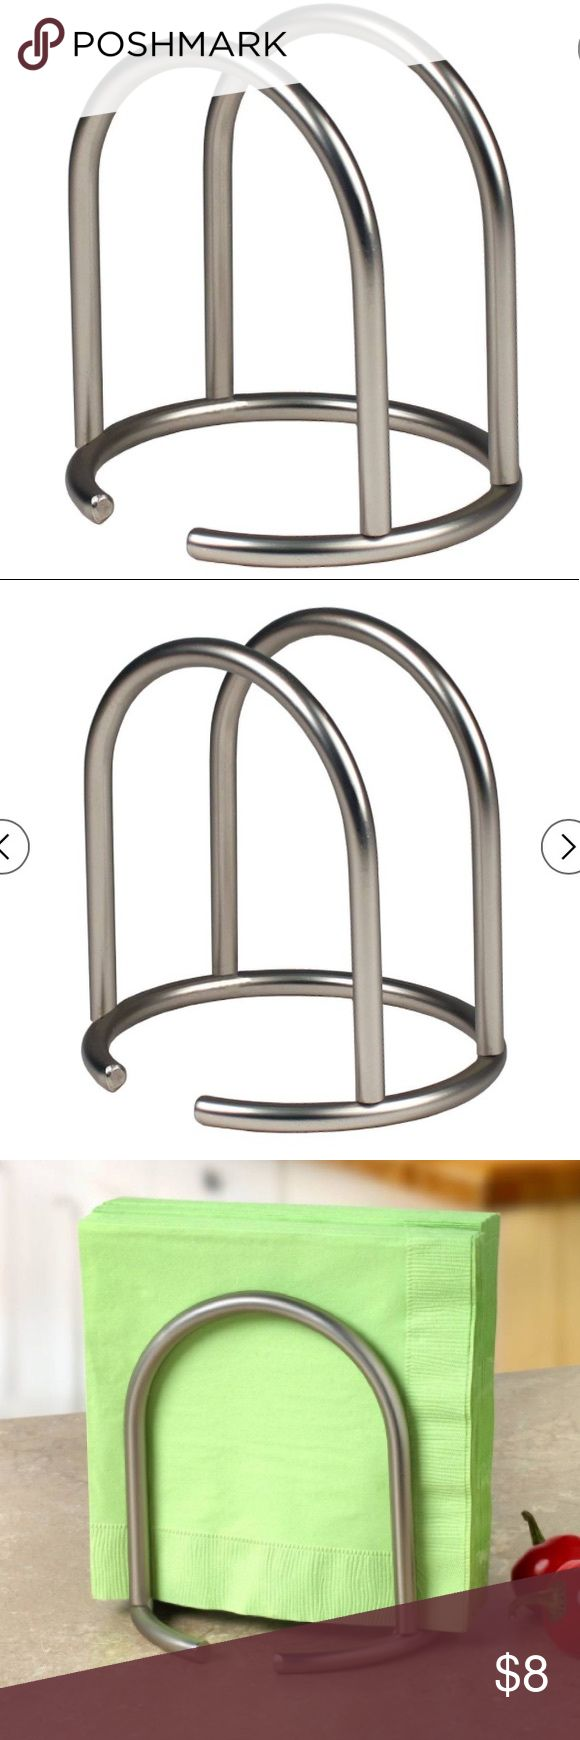 Retro Modern Napkin holder Sturdy steel construction, Satin Nickel Finish Designed to keep napkins dry and organized on kitchen tables, dimensions are 5.50D X 5.50W X 5.75H Euro Other